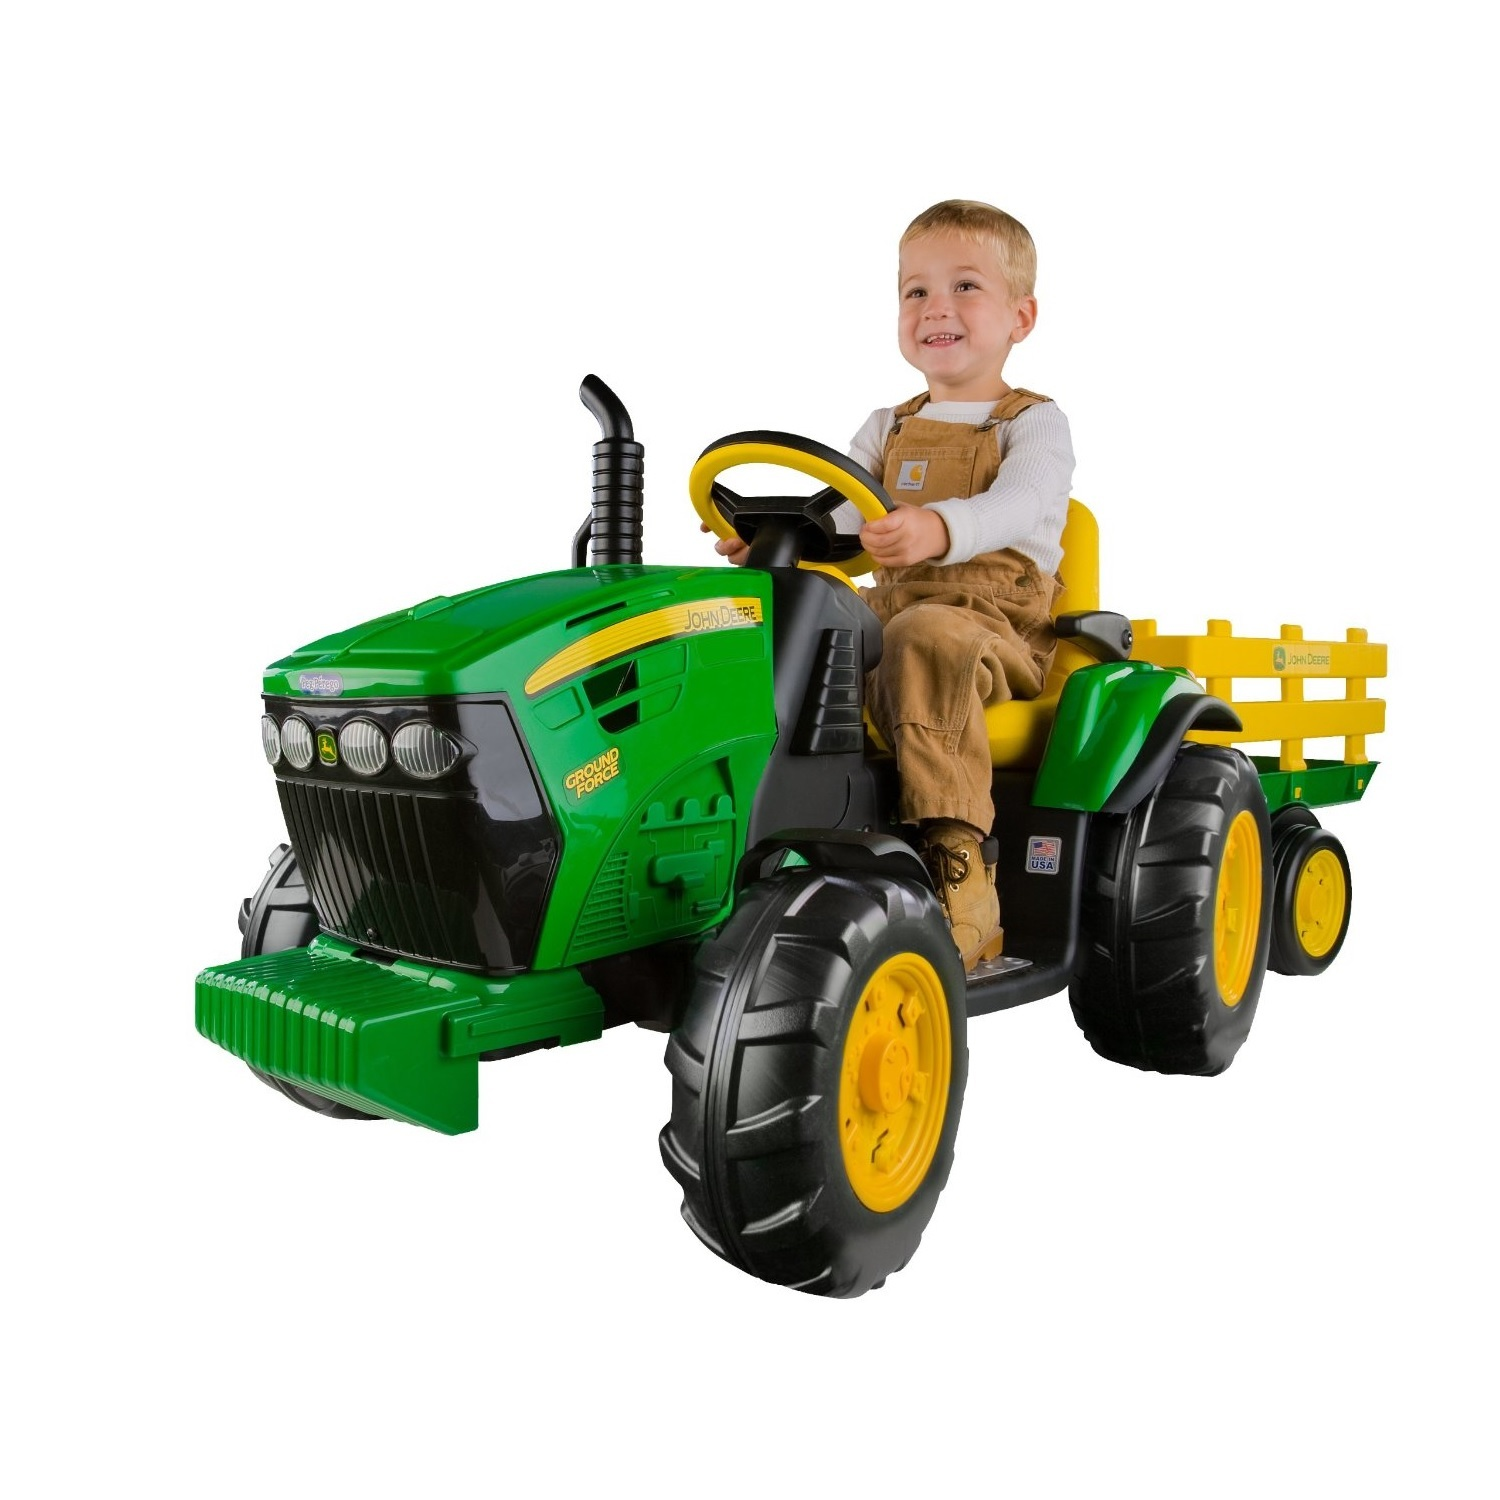 Motorized Toys For Boys : Battery powered tractor kids ride on trailer farm wheels